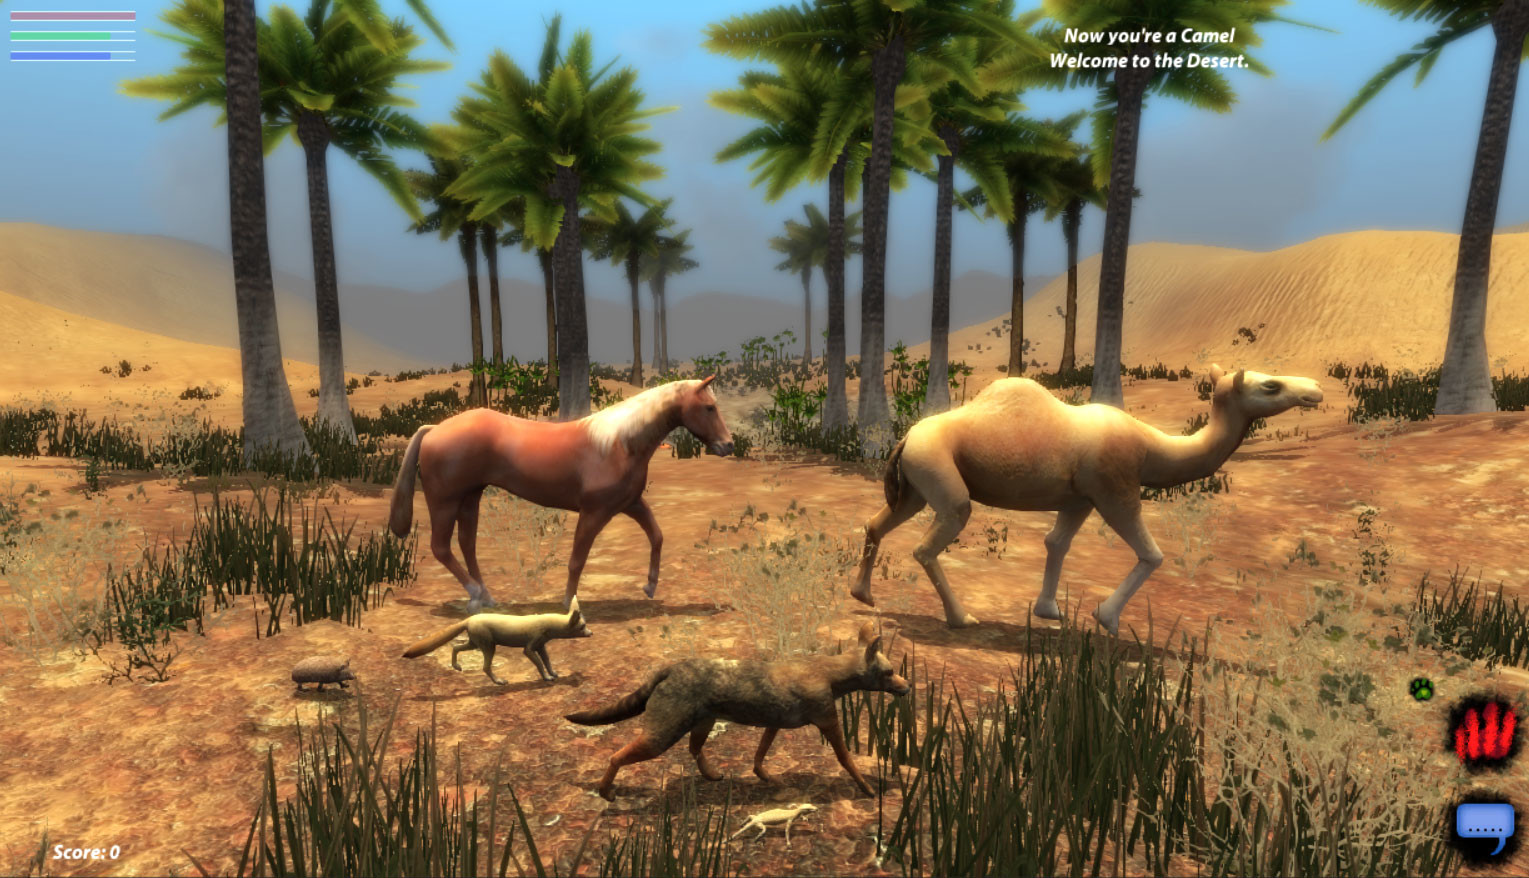 Image of: Wolf The Desert This Is Again Realtime The Horse Was Sculpted But The Rest Were Just Polygon Modeled As They Were Done Before It Was An Option For Us Artstation Artstation Lif an Animal Mmo James Flowerdew